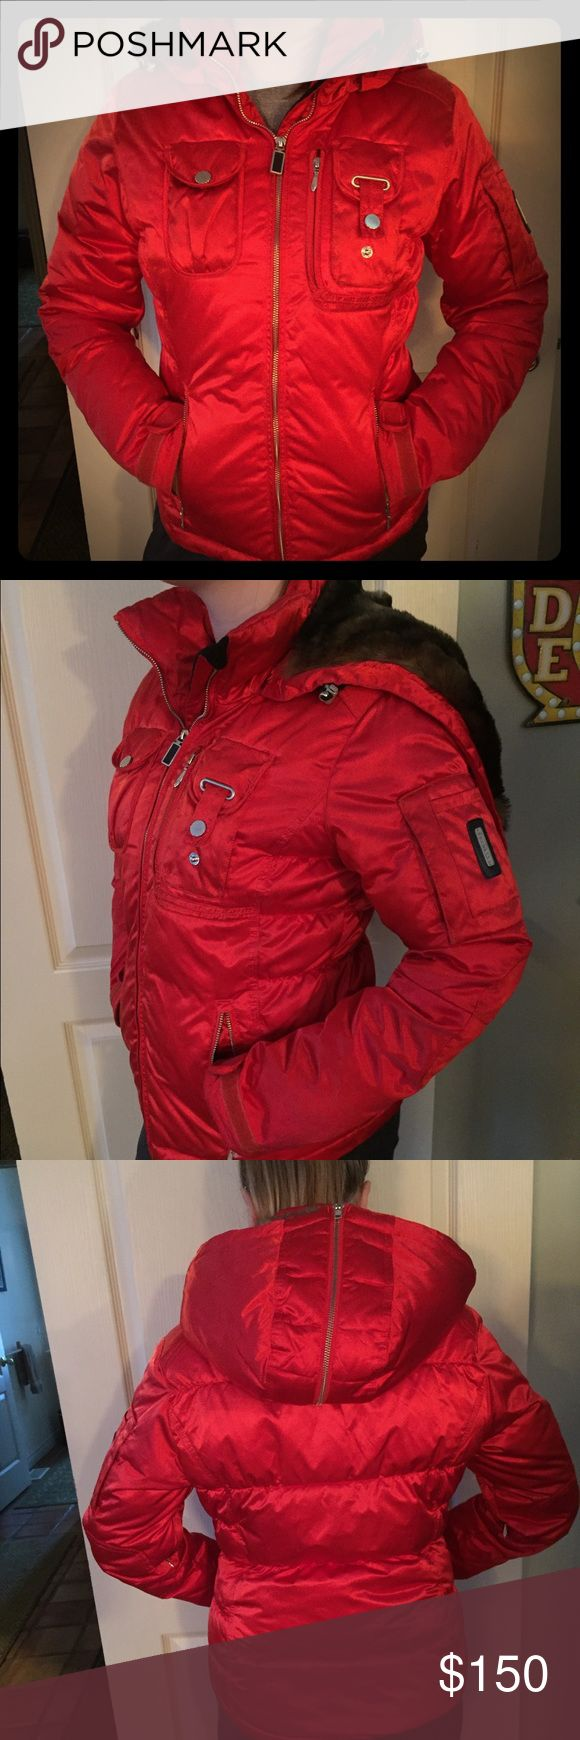 Obermeyer Red Satin Ski Jacket With its unique satin finish, this beautiful Obermeyer Leighton jacket will keep you toasty warm and looking good on the slopes or in town. It features Fiber Down insulation (100% polyester), waterproof exterior and all the technical specs you expect from a brand like Oberneyer. The faux-fur-lined hood is removable and also can be unzipped to lie flat. For an added touch the interior lining features a fun cheetah print. This jacket is in fair condition. Size 8…